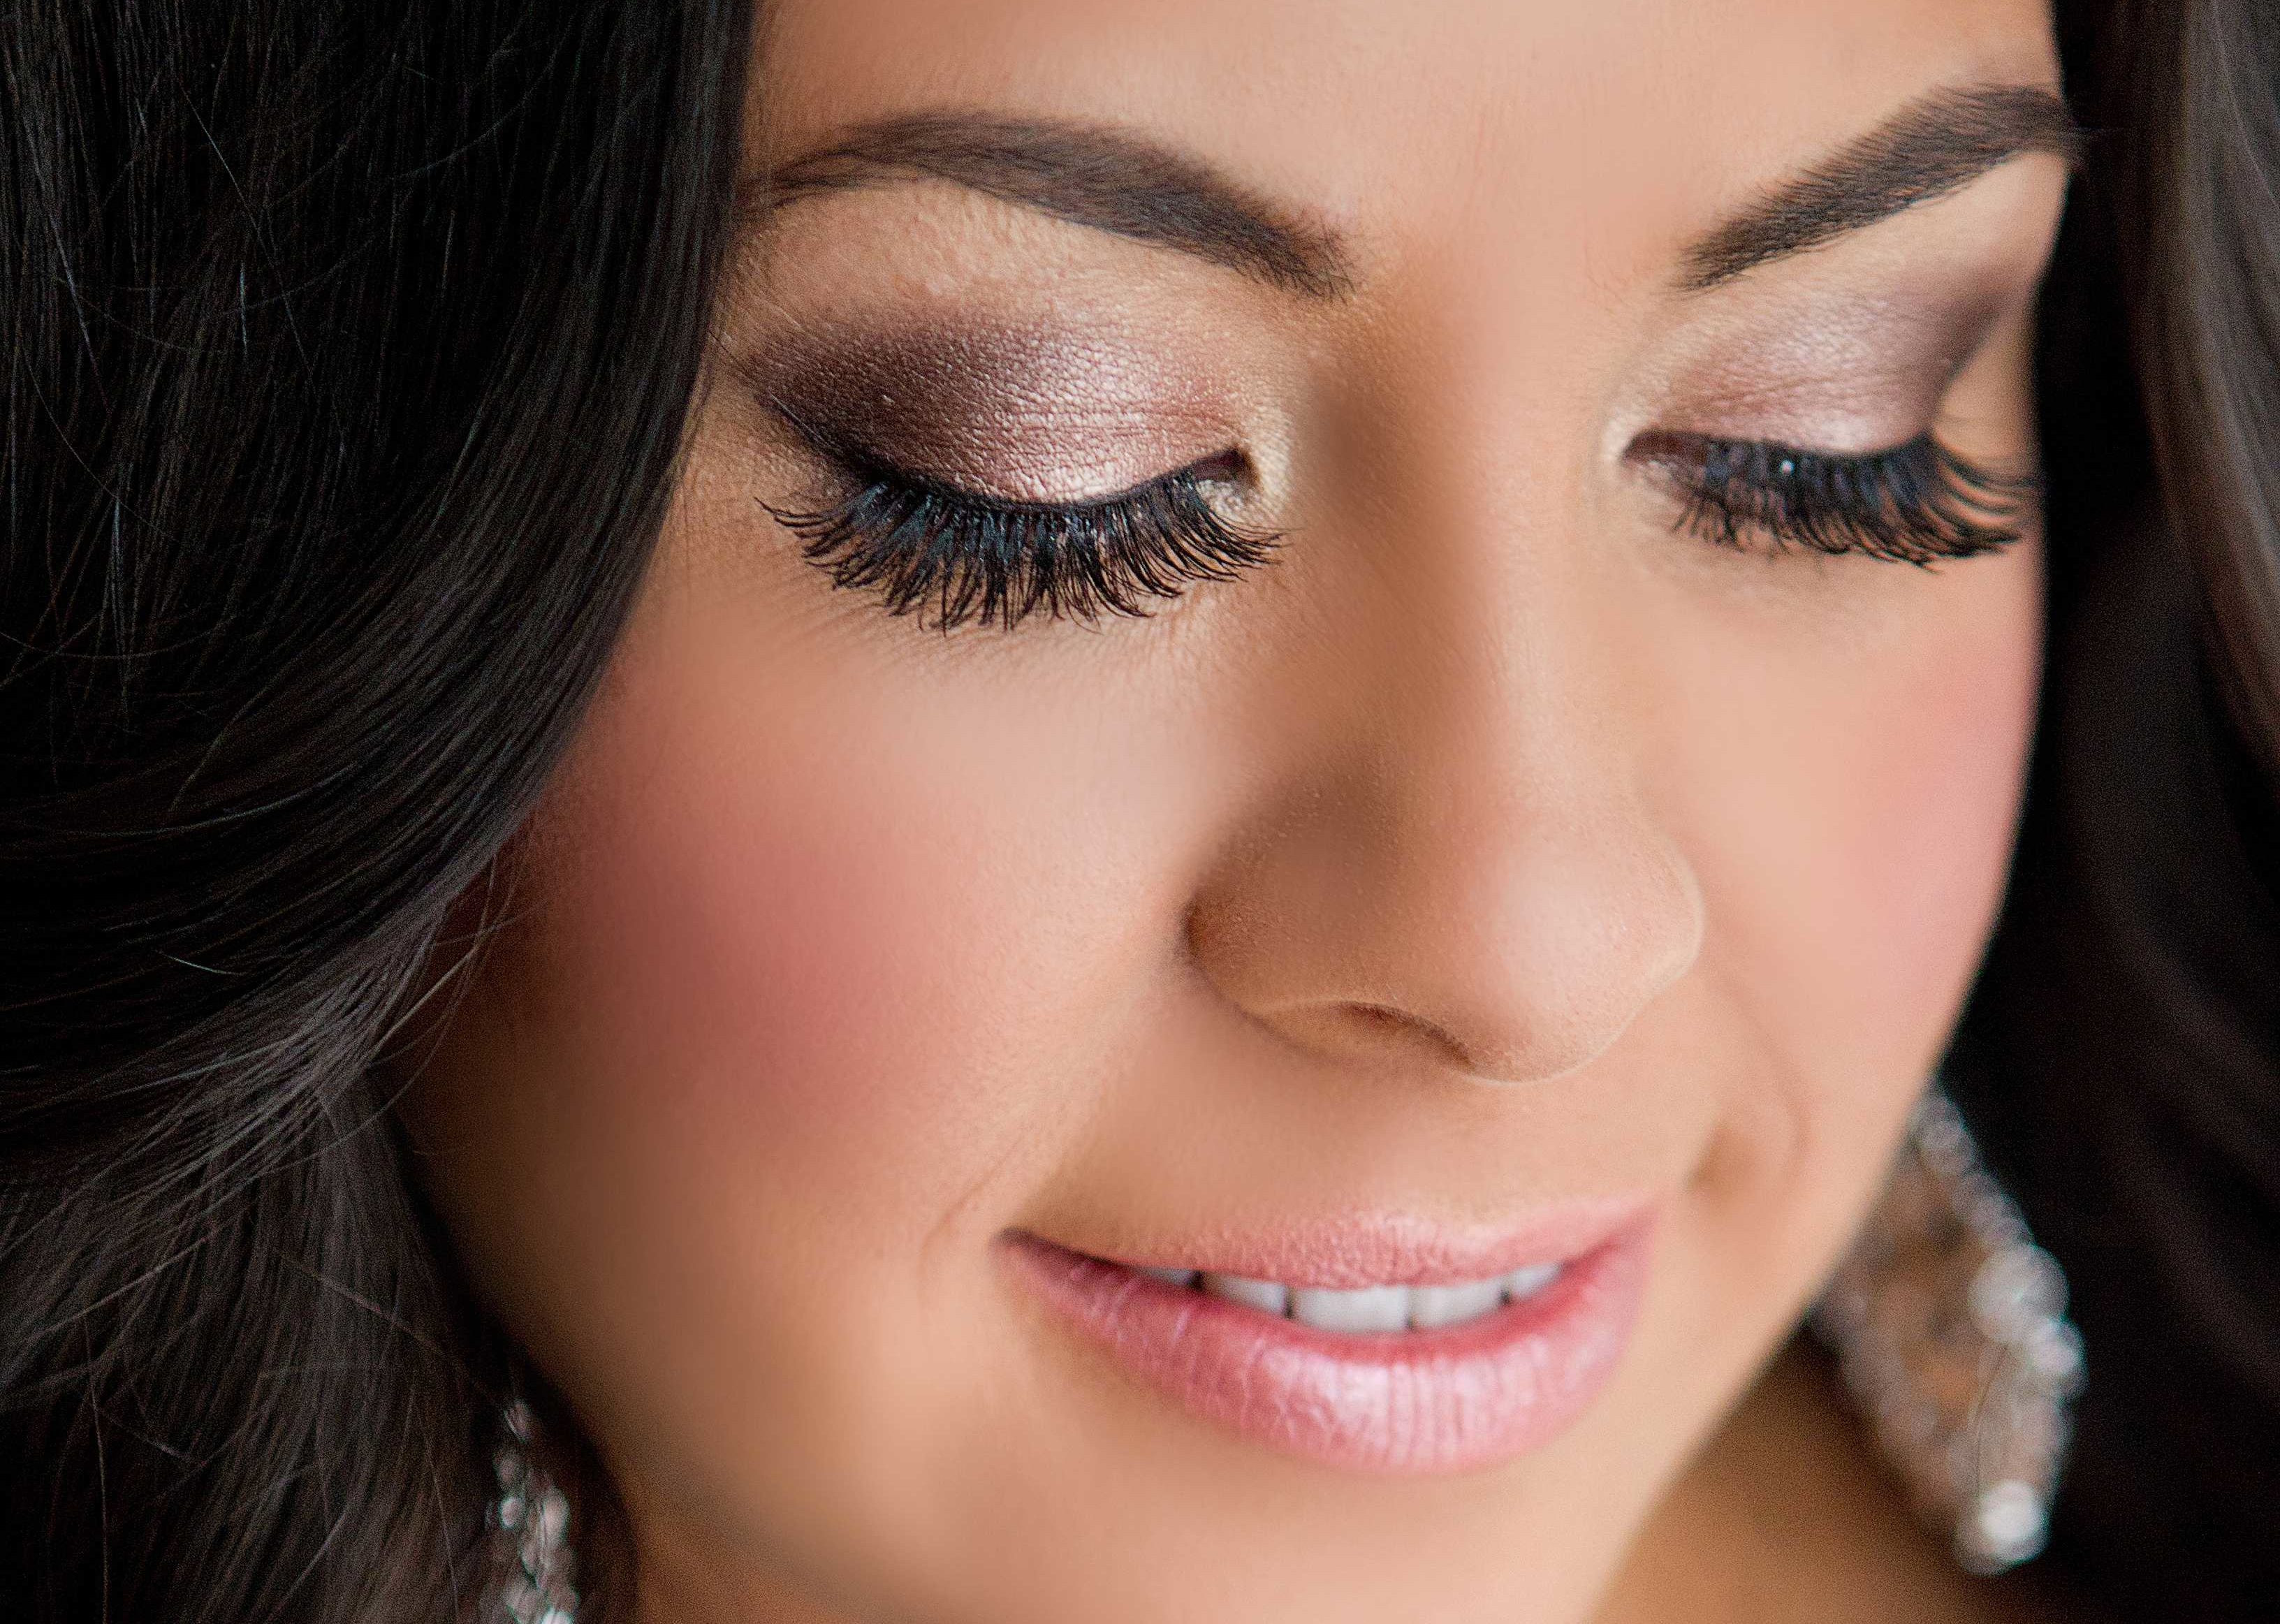 Bridal Makeup For Destination Wedding : Makeup Inspiration Help! - Weddingbee